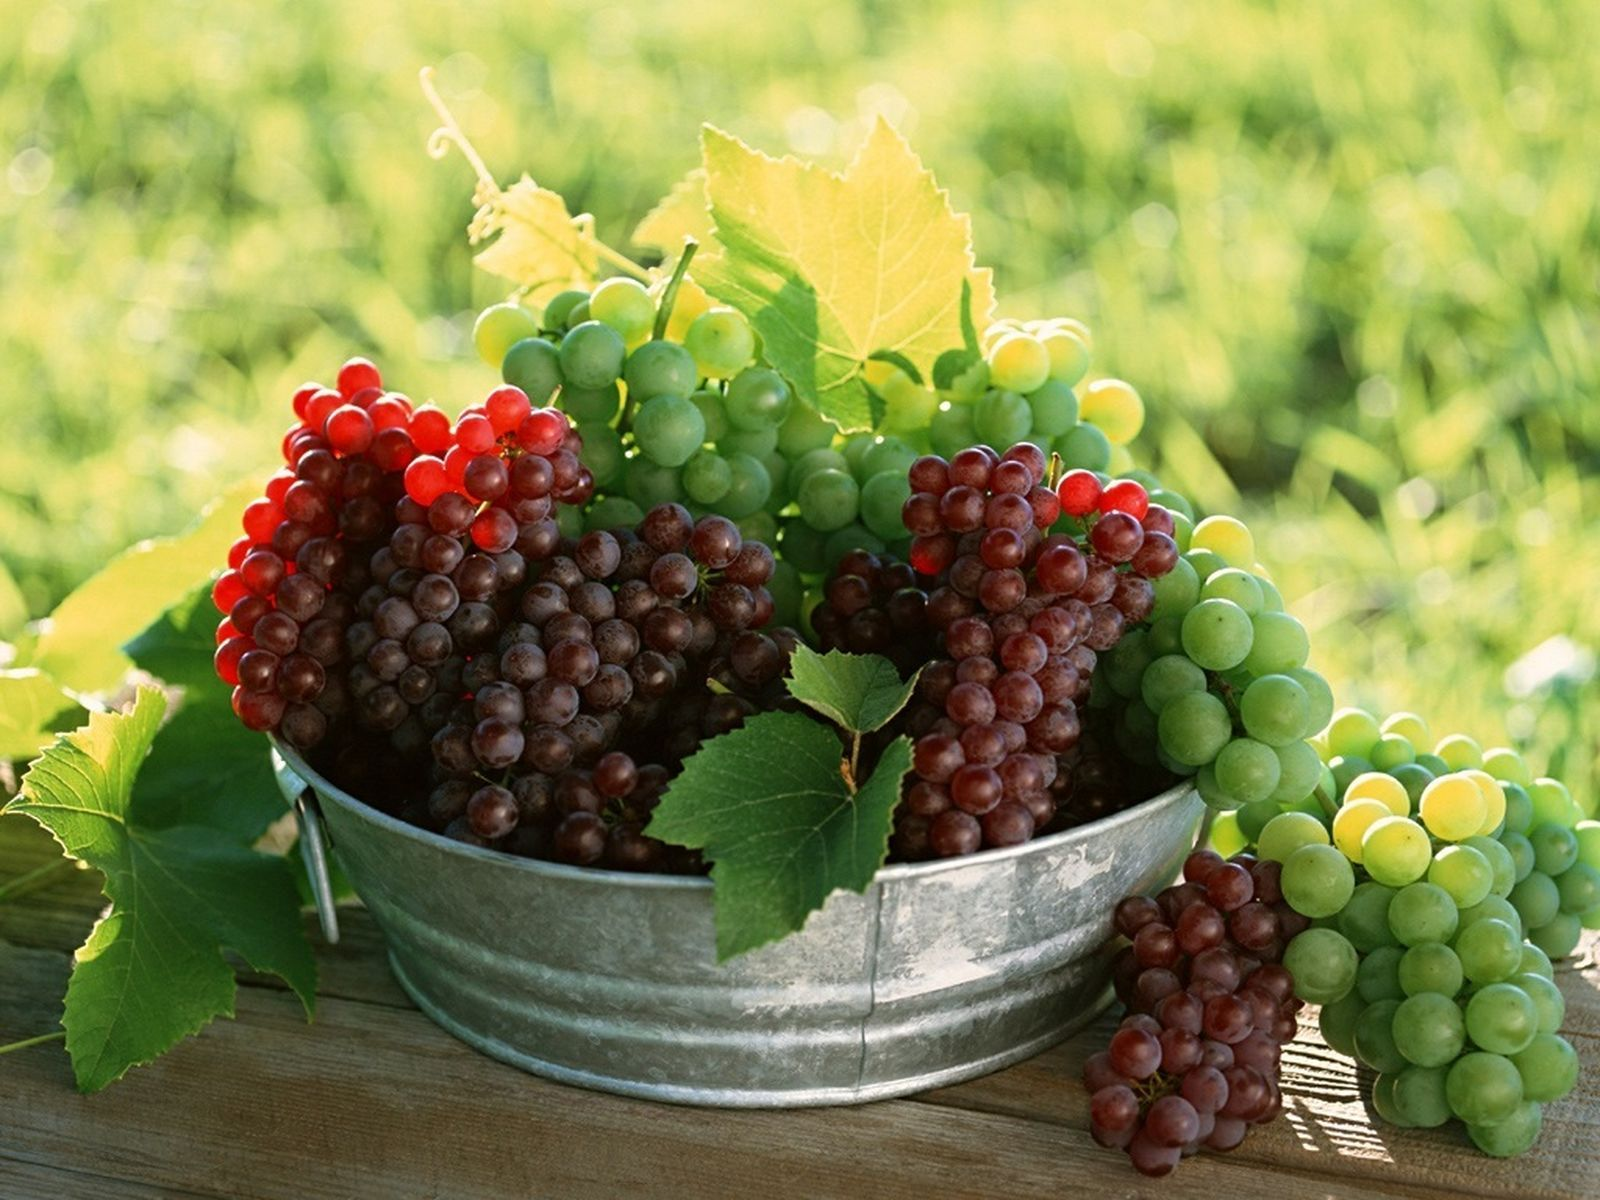 Fresh juice and fruits in hd photos cute babies photos collection - Grapes In Vineyard Abundant Harvest Of Fruit Fruit Photography Fresh Grape Clusters Photos 1